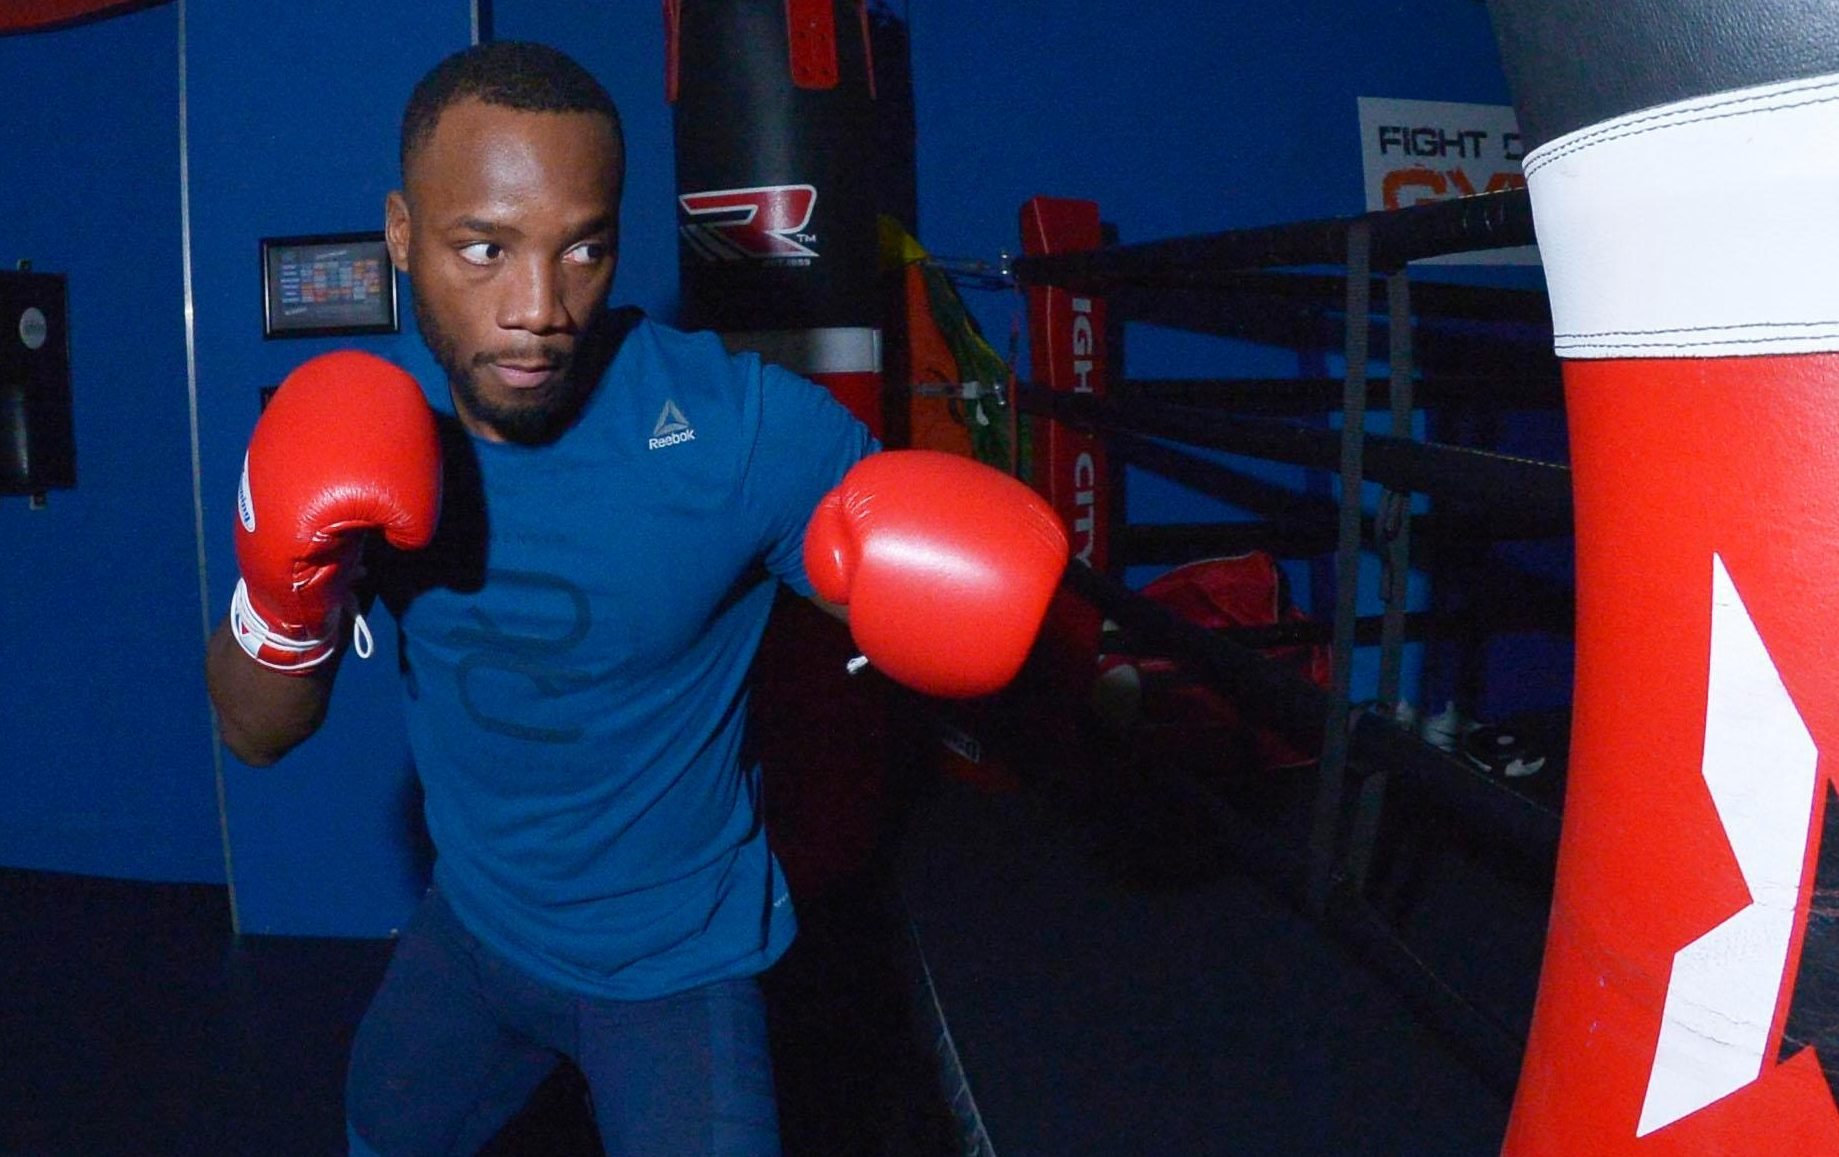 UFC star Leon Edwards has his eyes on Liverpool fighter Darren Till